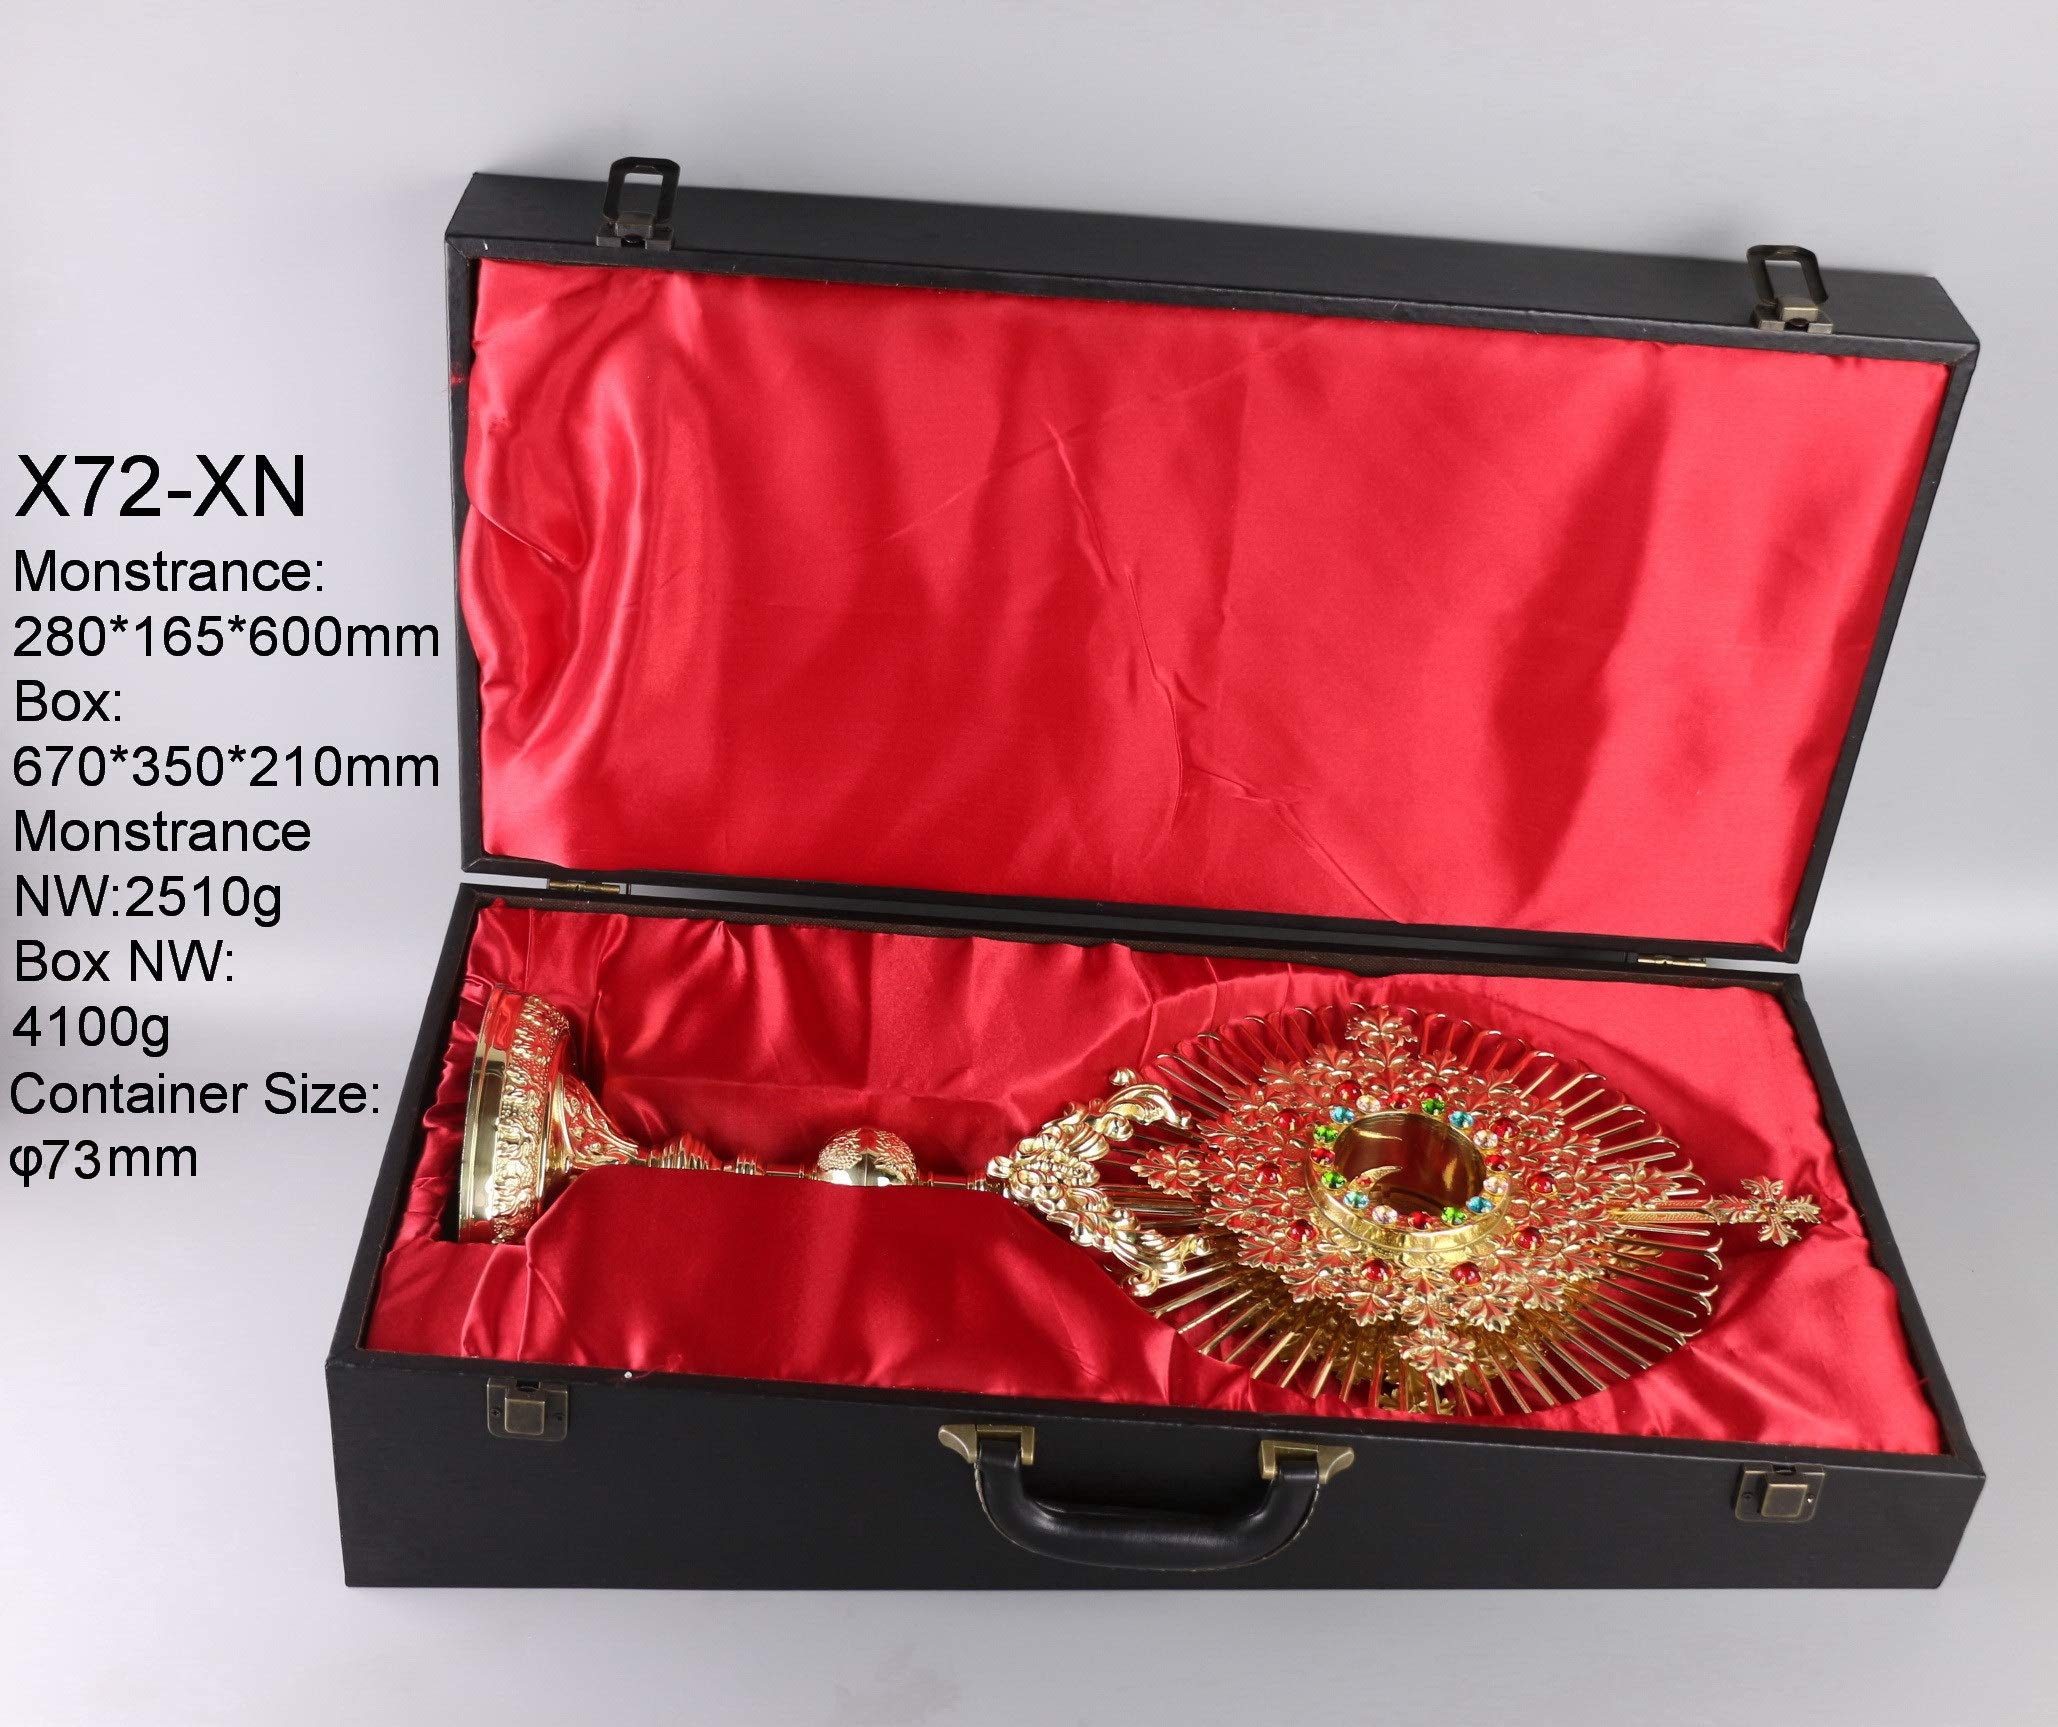 Rare Fine Monstrance 23 3/5'' High with Case, Beautiful and Affordable! X72-XN